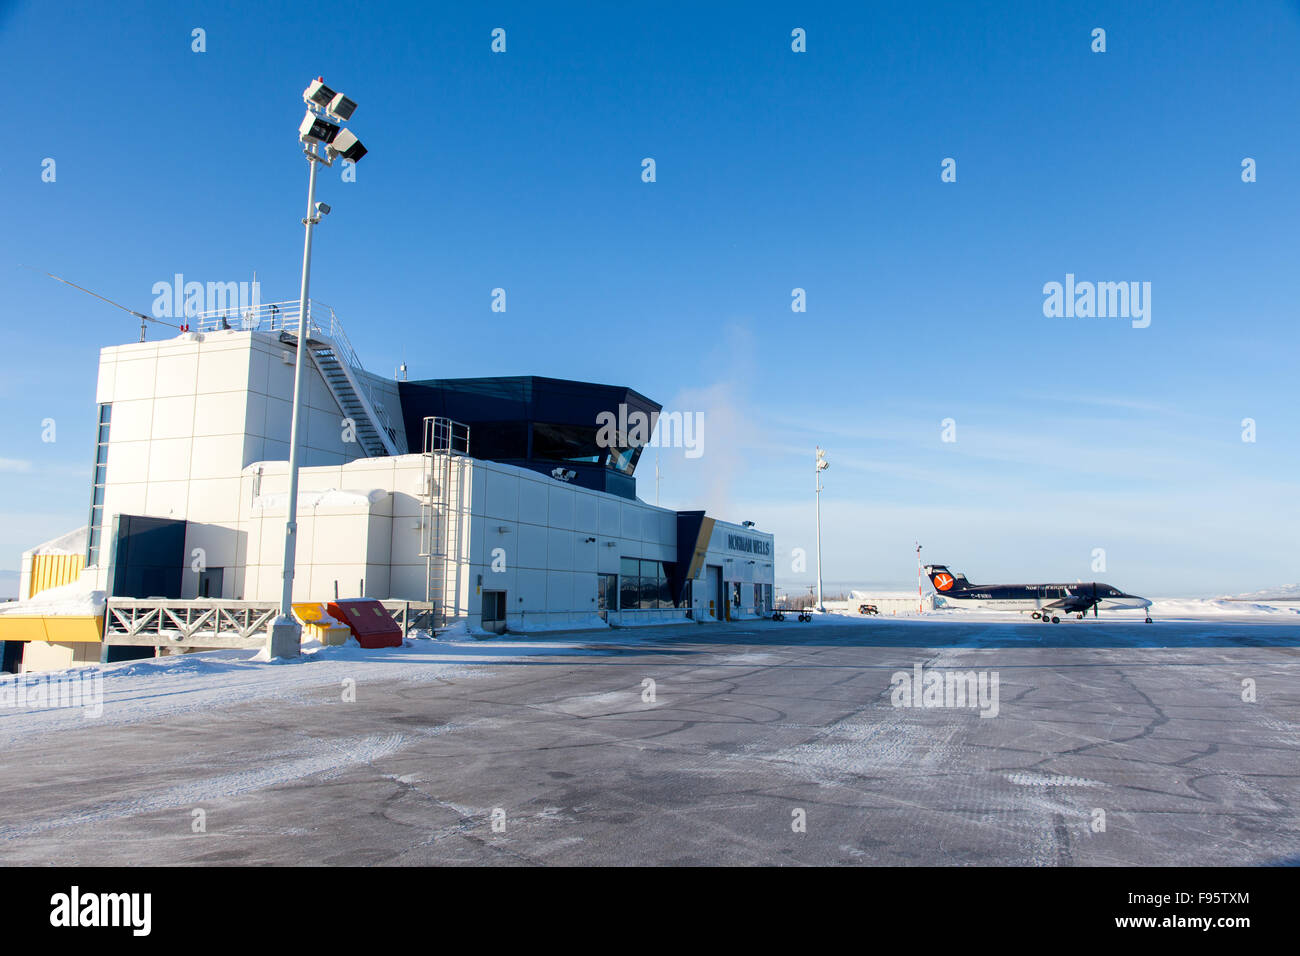 The Airport terminal in Norman Wells, Northwest Territories, Canada. - Stock Image